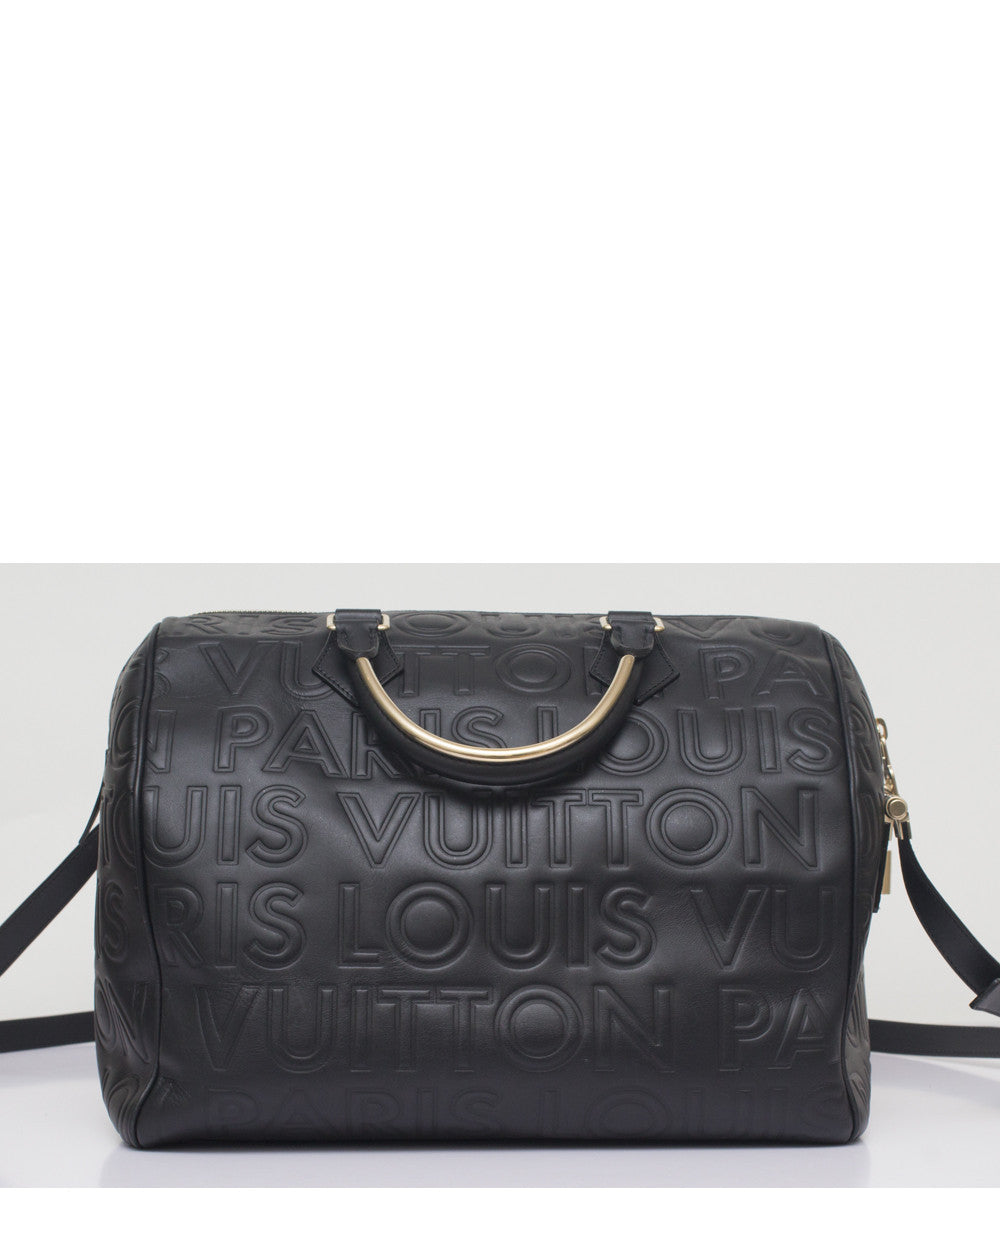 Louis Vuitton Speedy Paris Cube Bag